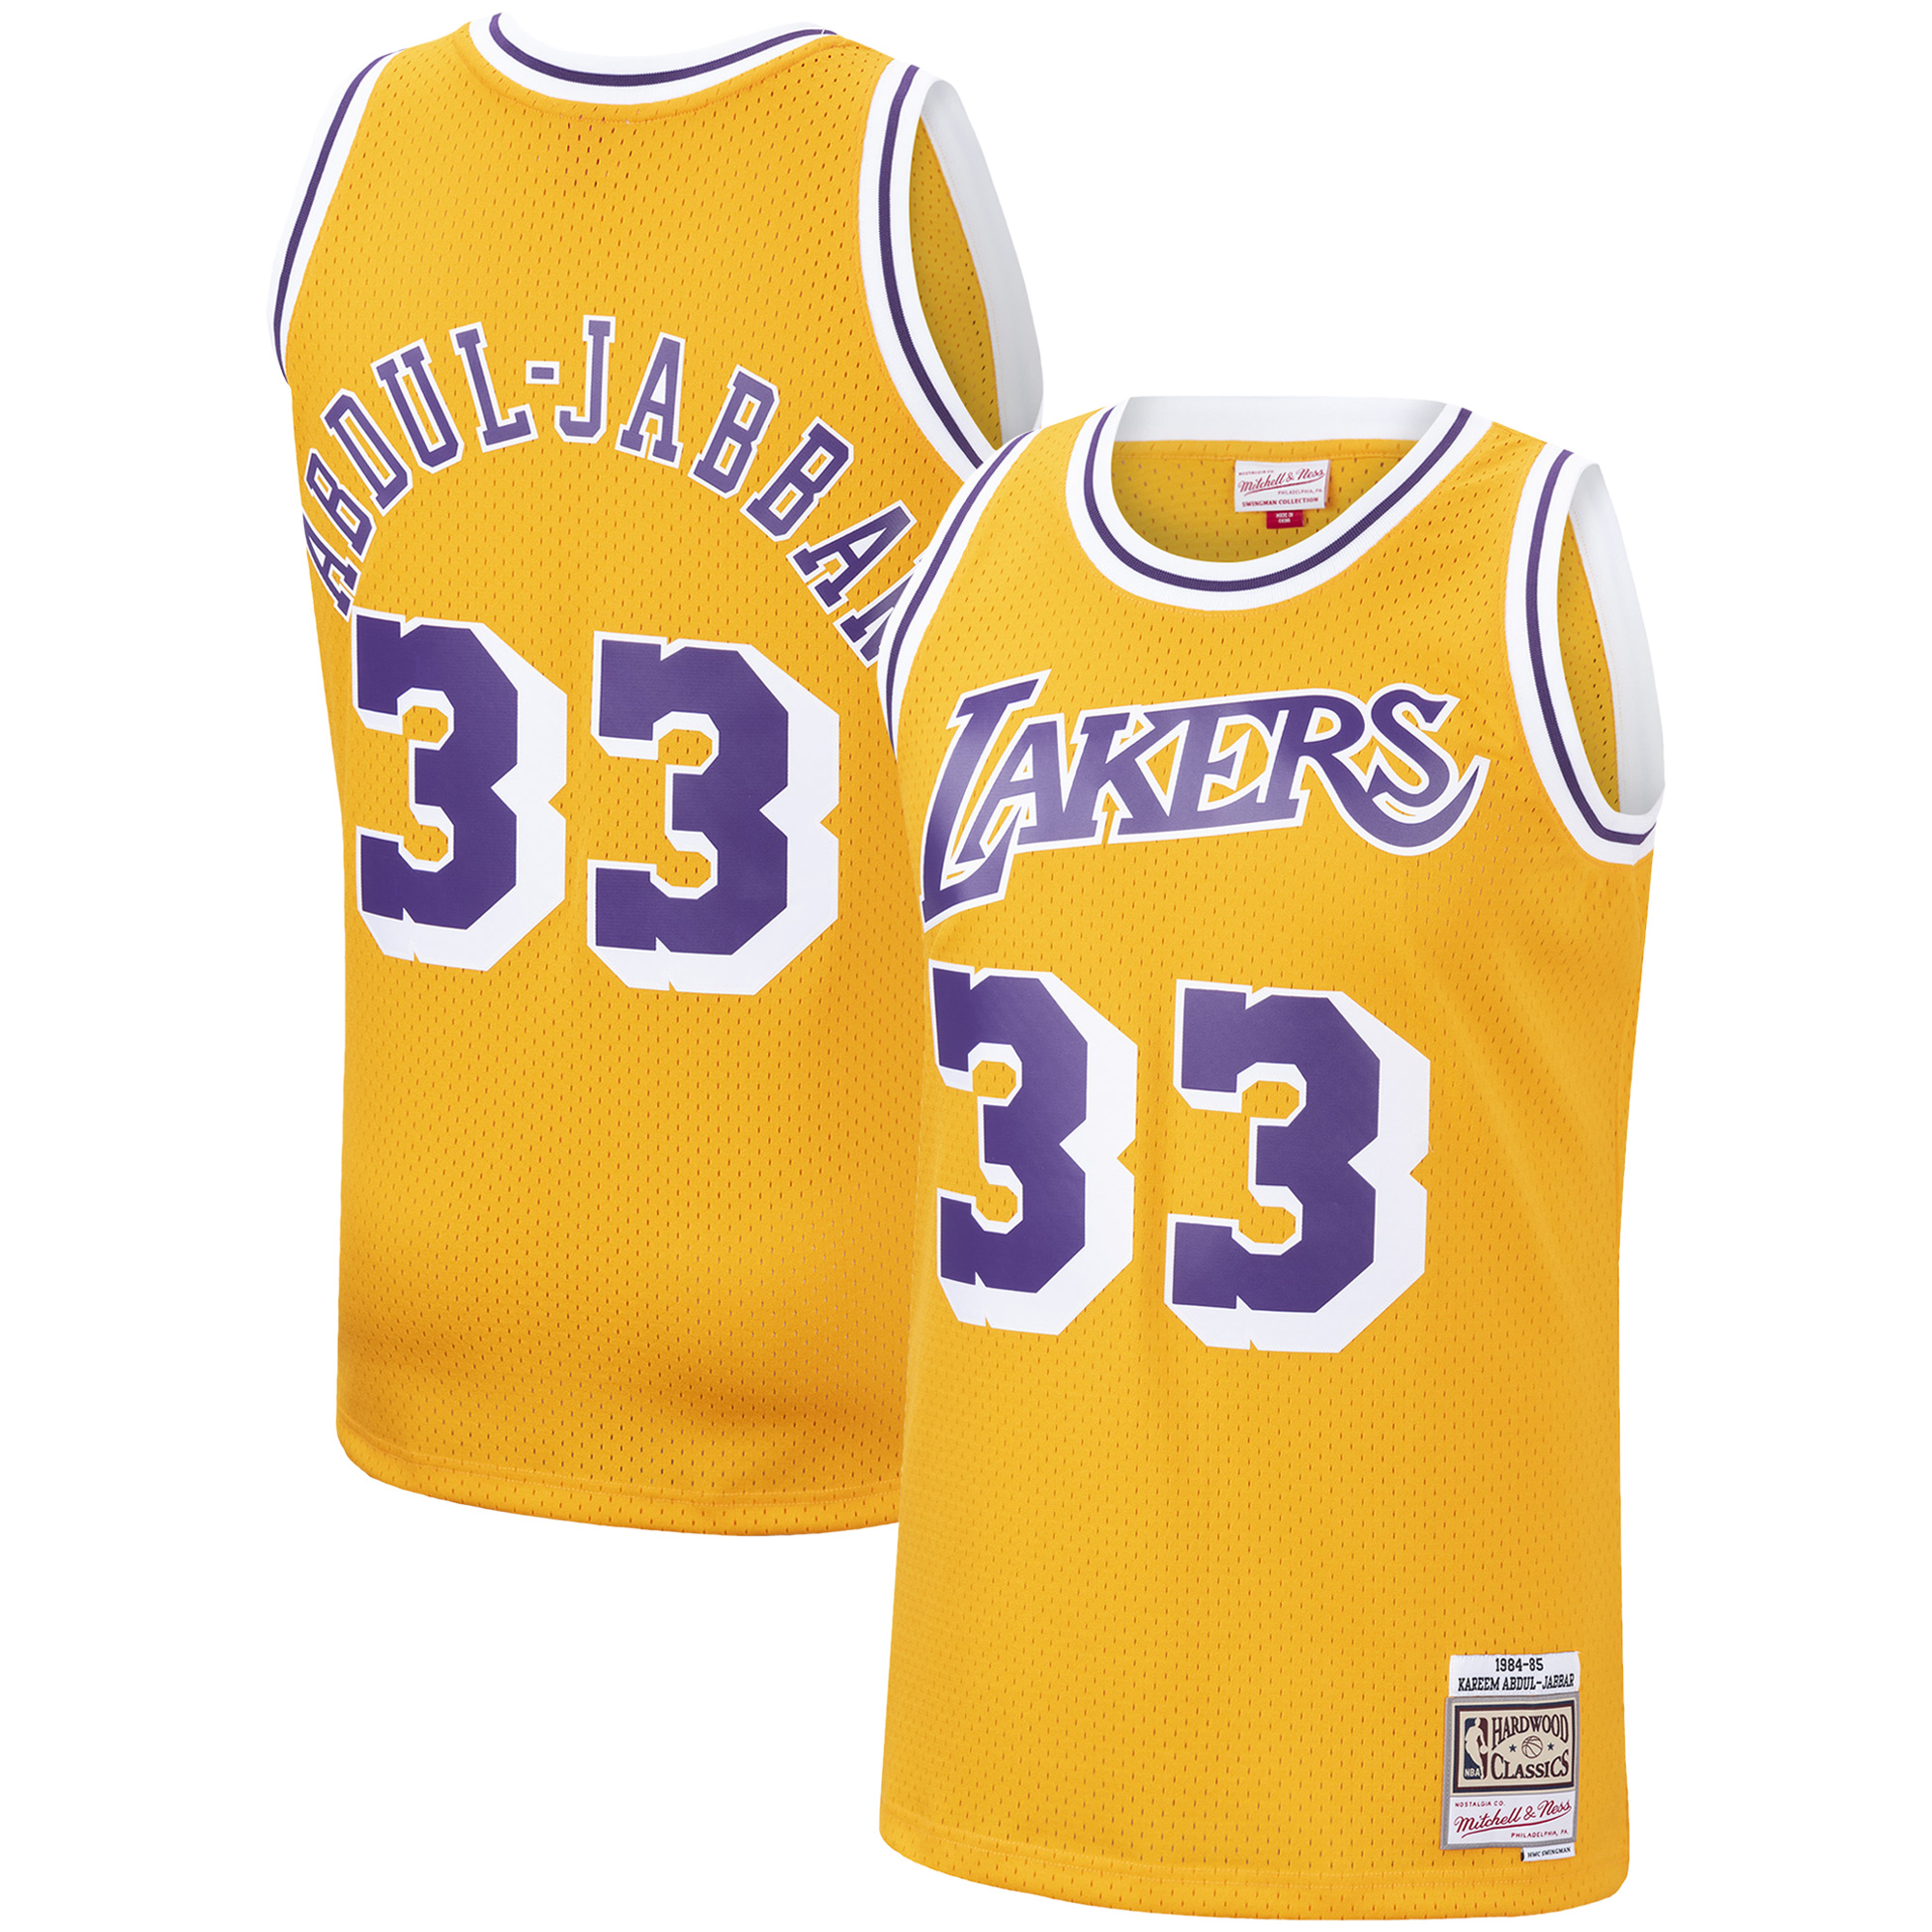 Kareem Abdul-Jabbar Los Angeles Lakers Mitchell & Ness 1984-85 Hardwood Classics Swingman Jersey - Gold